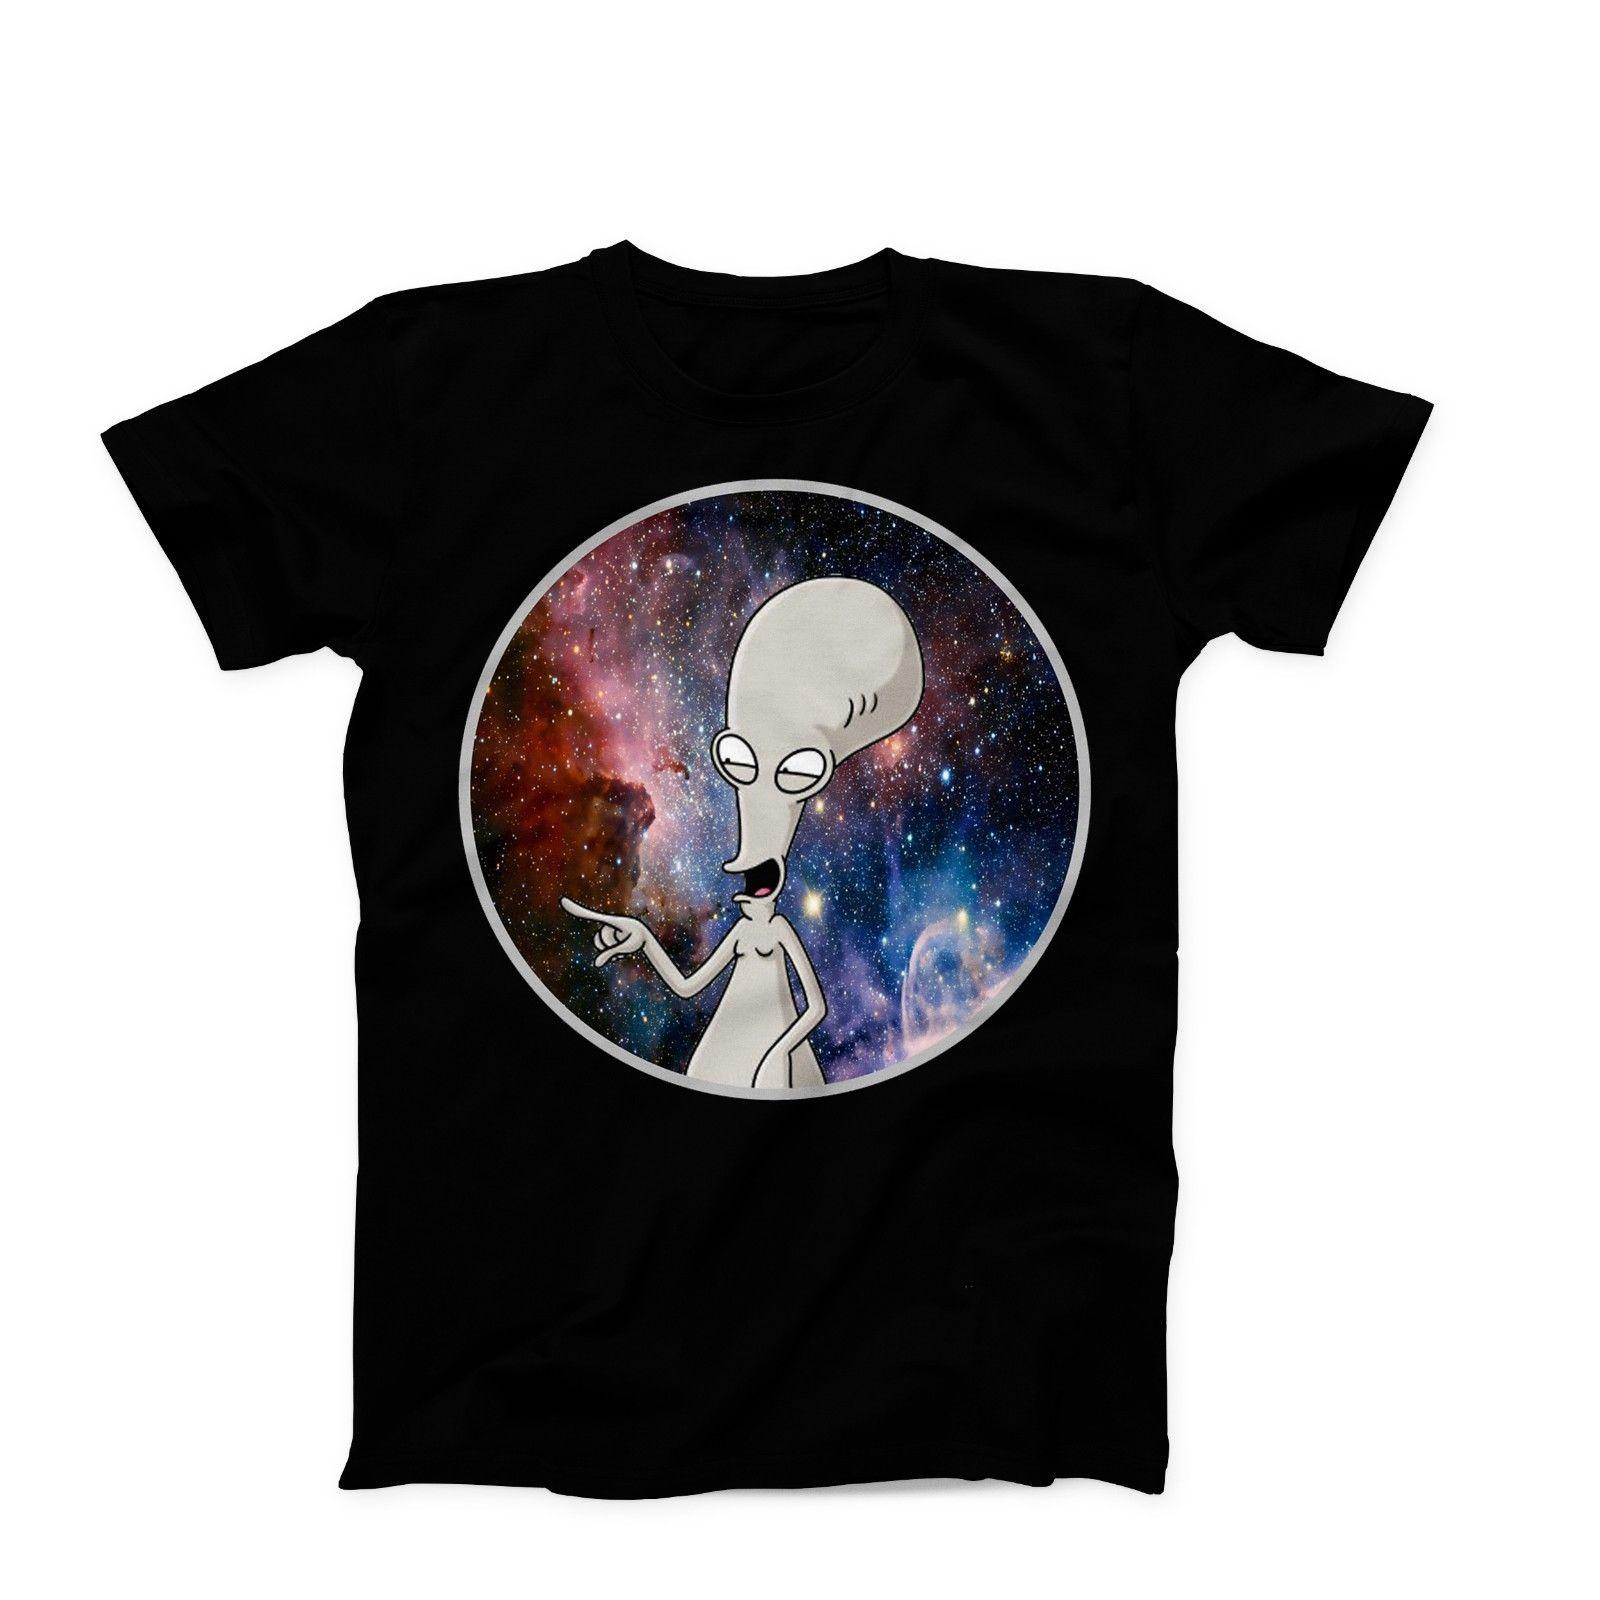 American Dad Roger TV Show Anime Cool Funny Novelty T Shirt Birthday Gift New Arrival Male Tees Casual Boy Tops Discounts Ringer Shirts Political